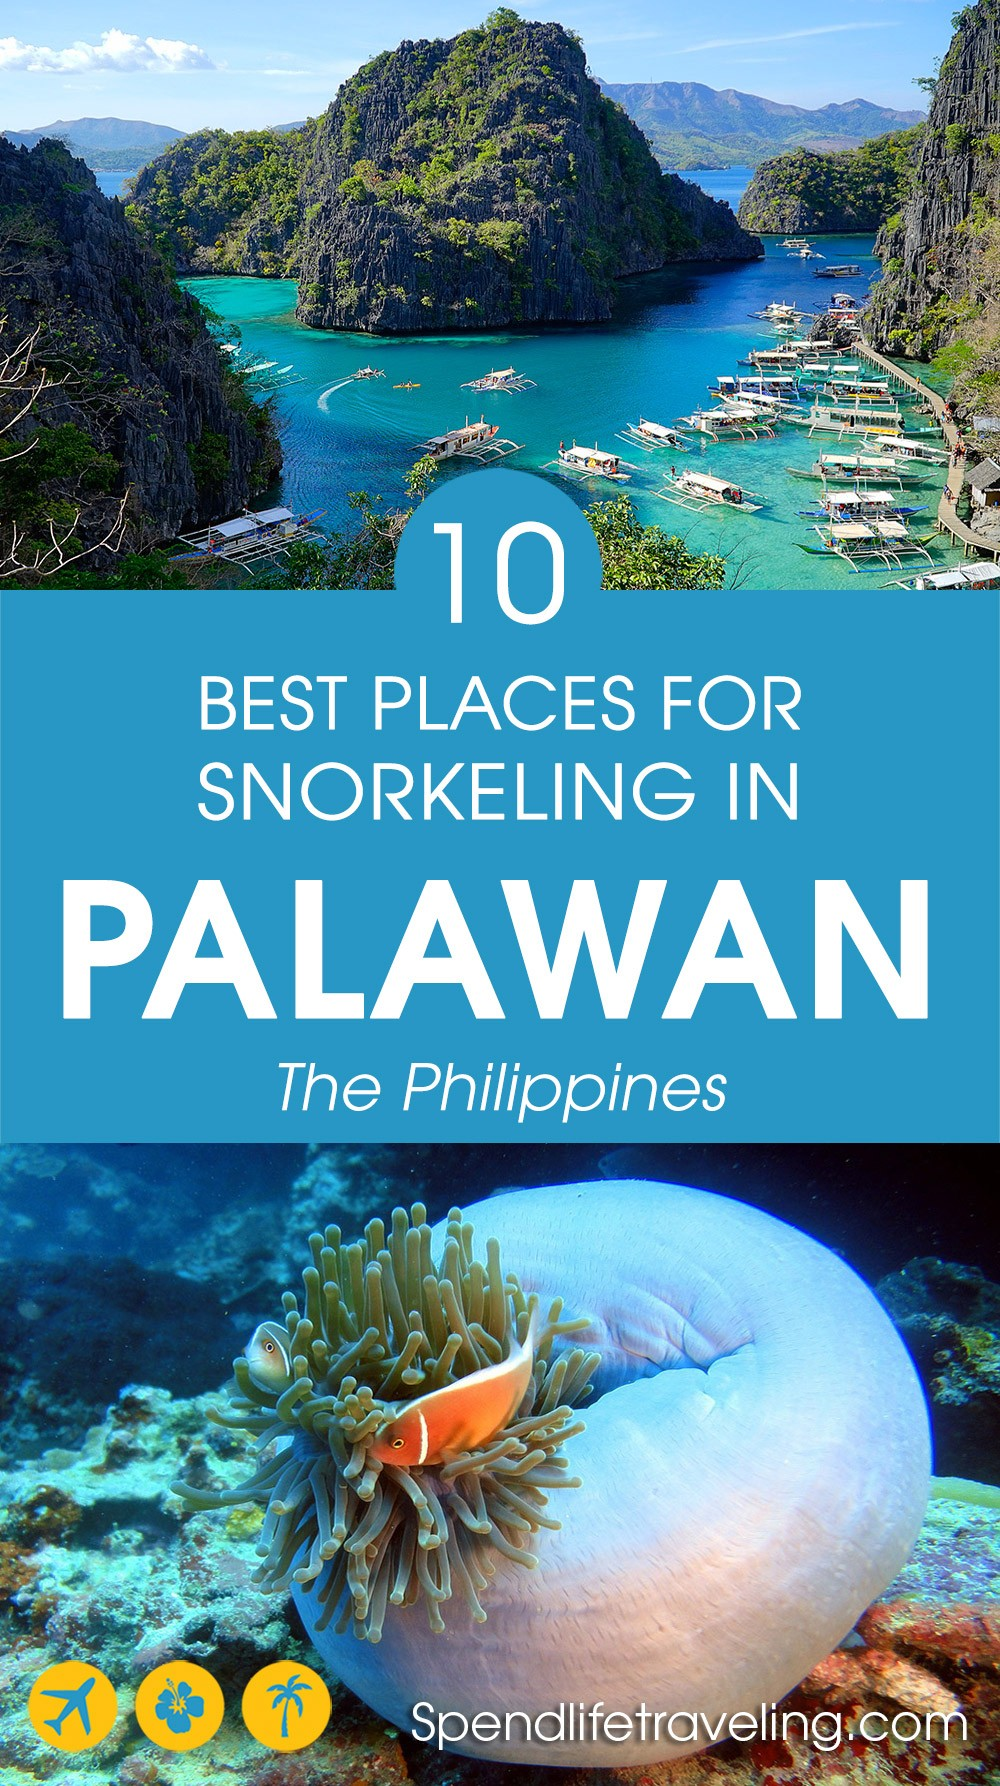 Are you traveling to the #Philippines? Then check out these 10 great #snorkeling spots! #Palawan #Coron #bestsnorkeling #travelPhilippines